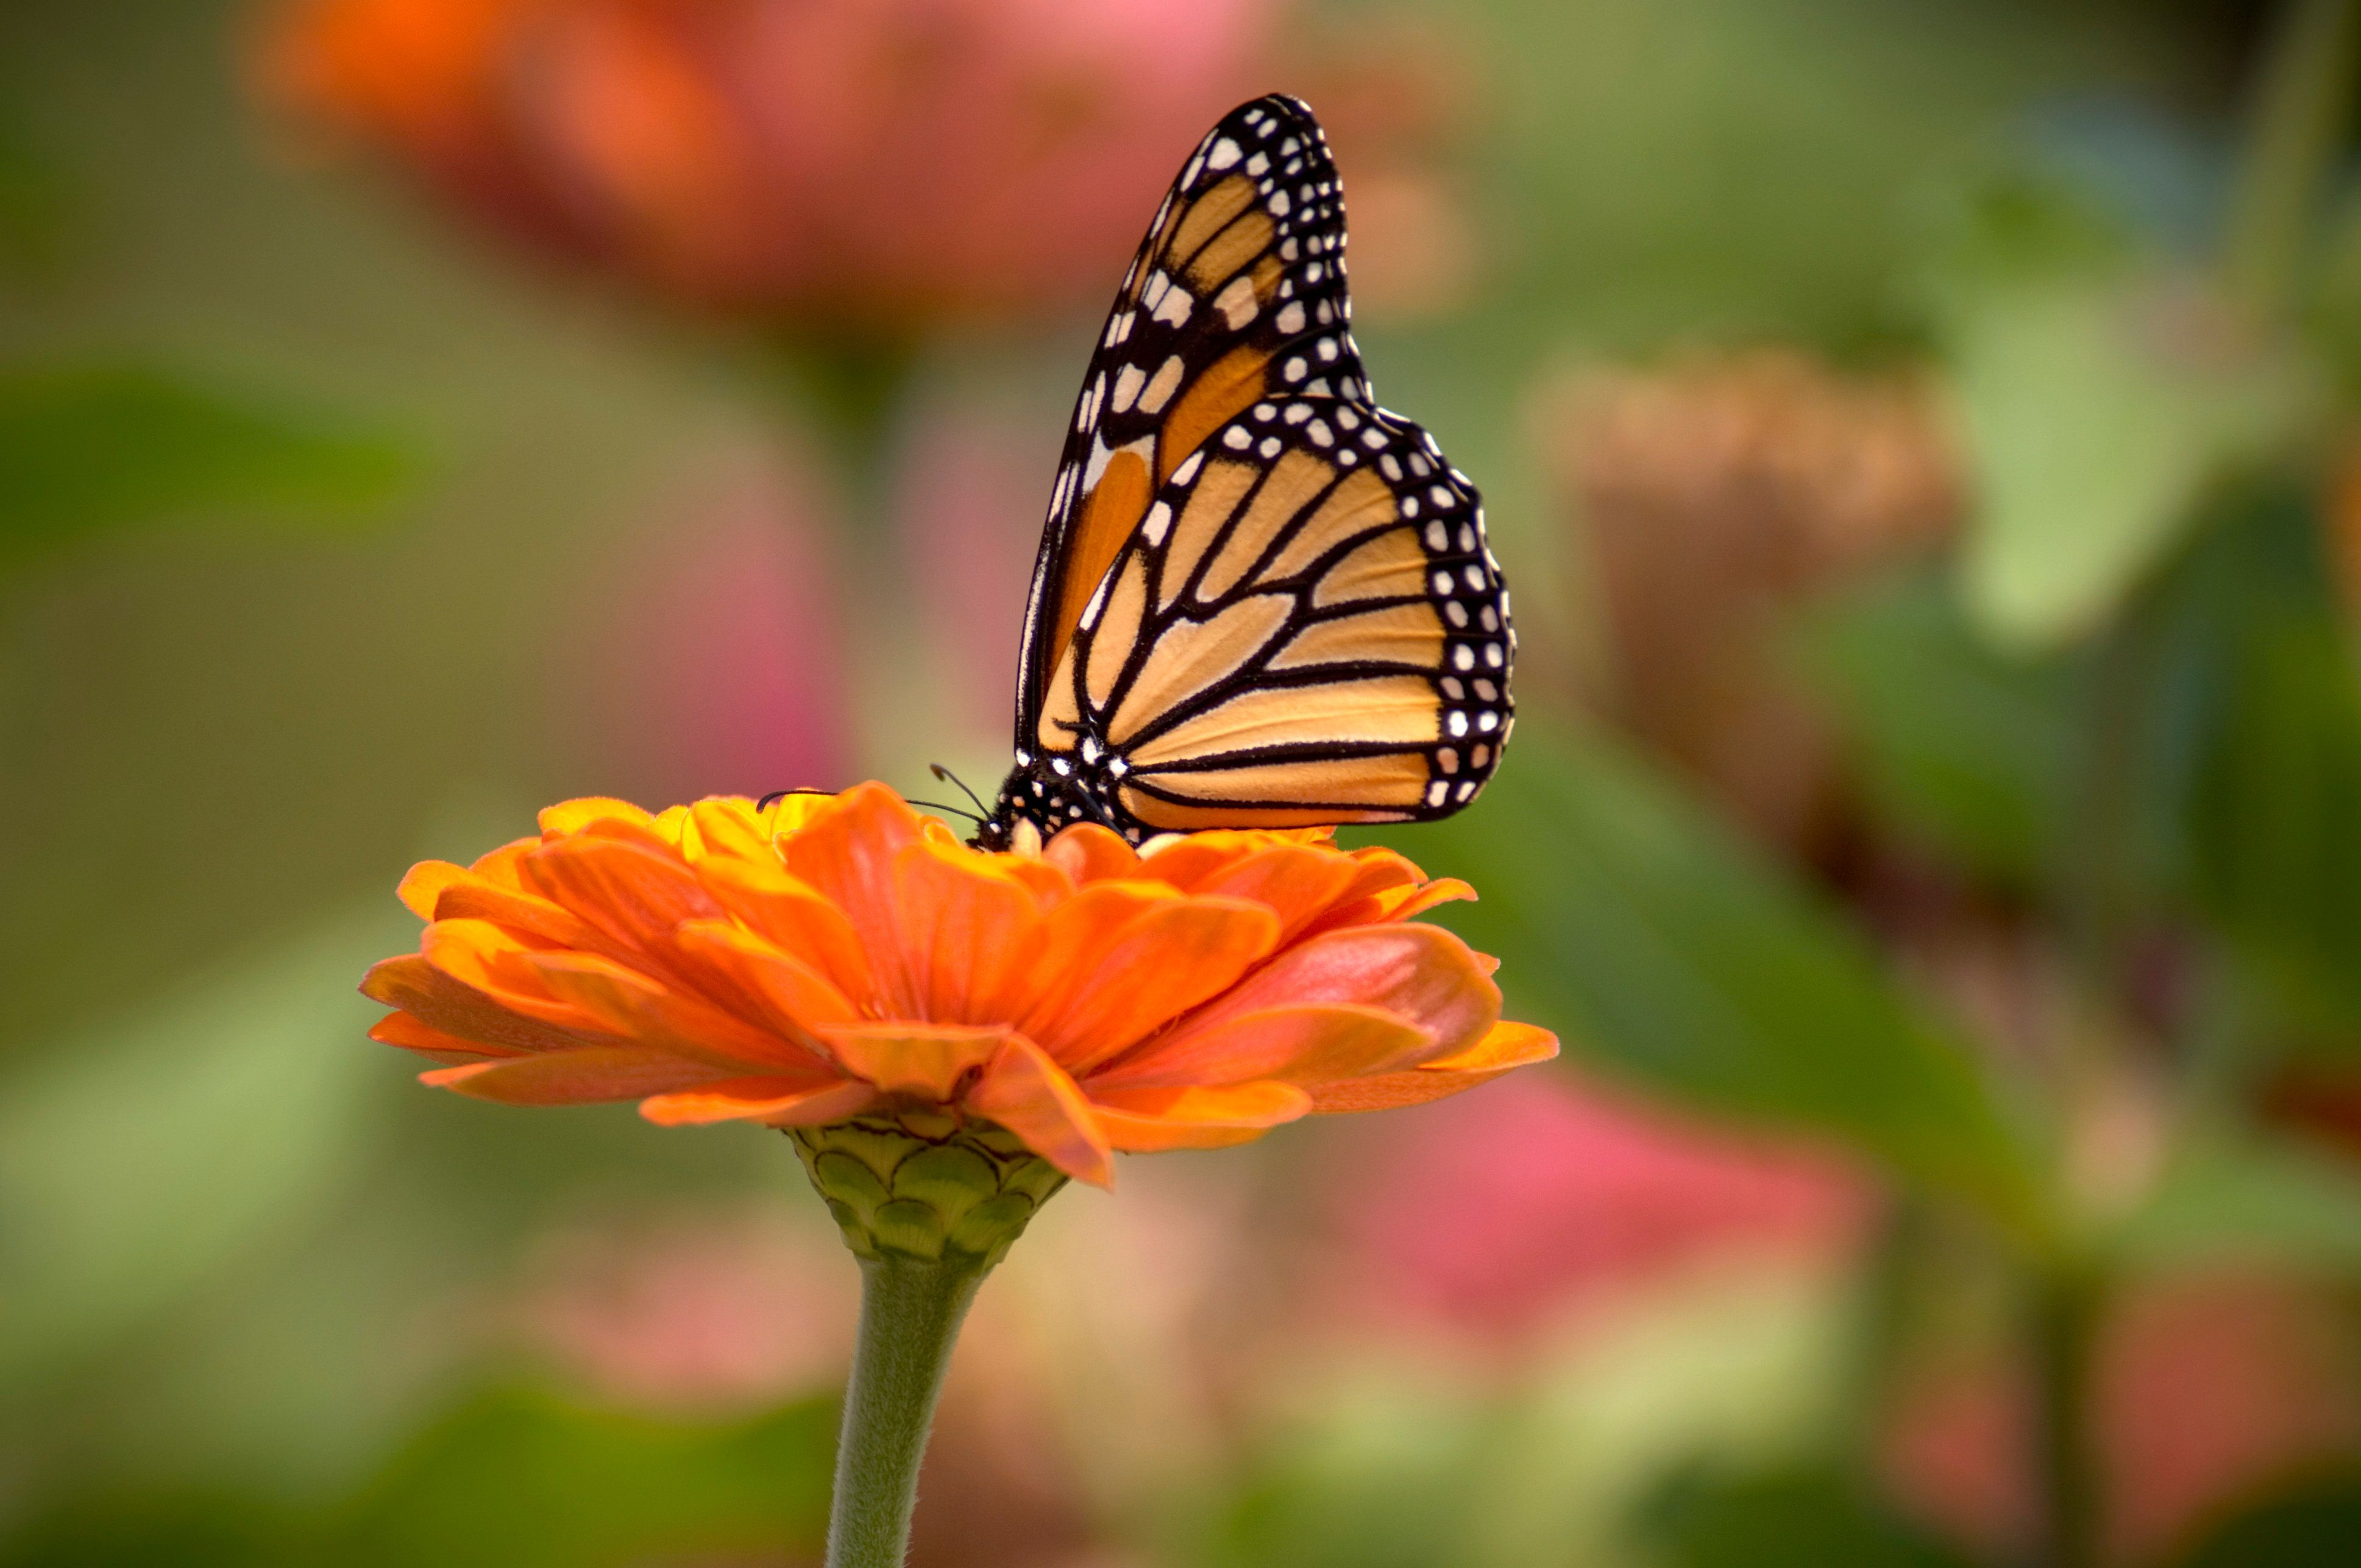 eastern monarch butterflies may be at risk of extinction within 20